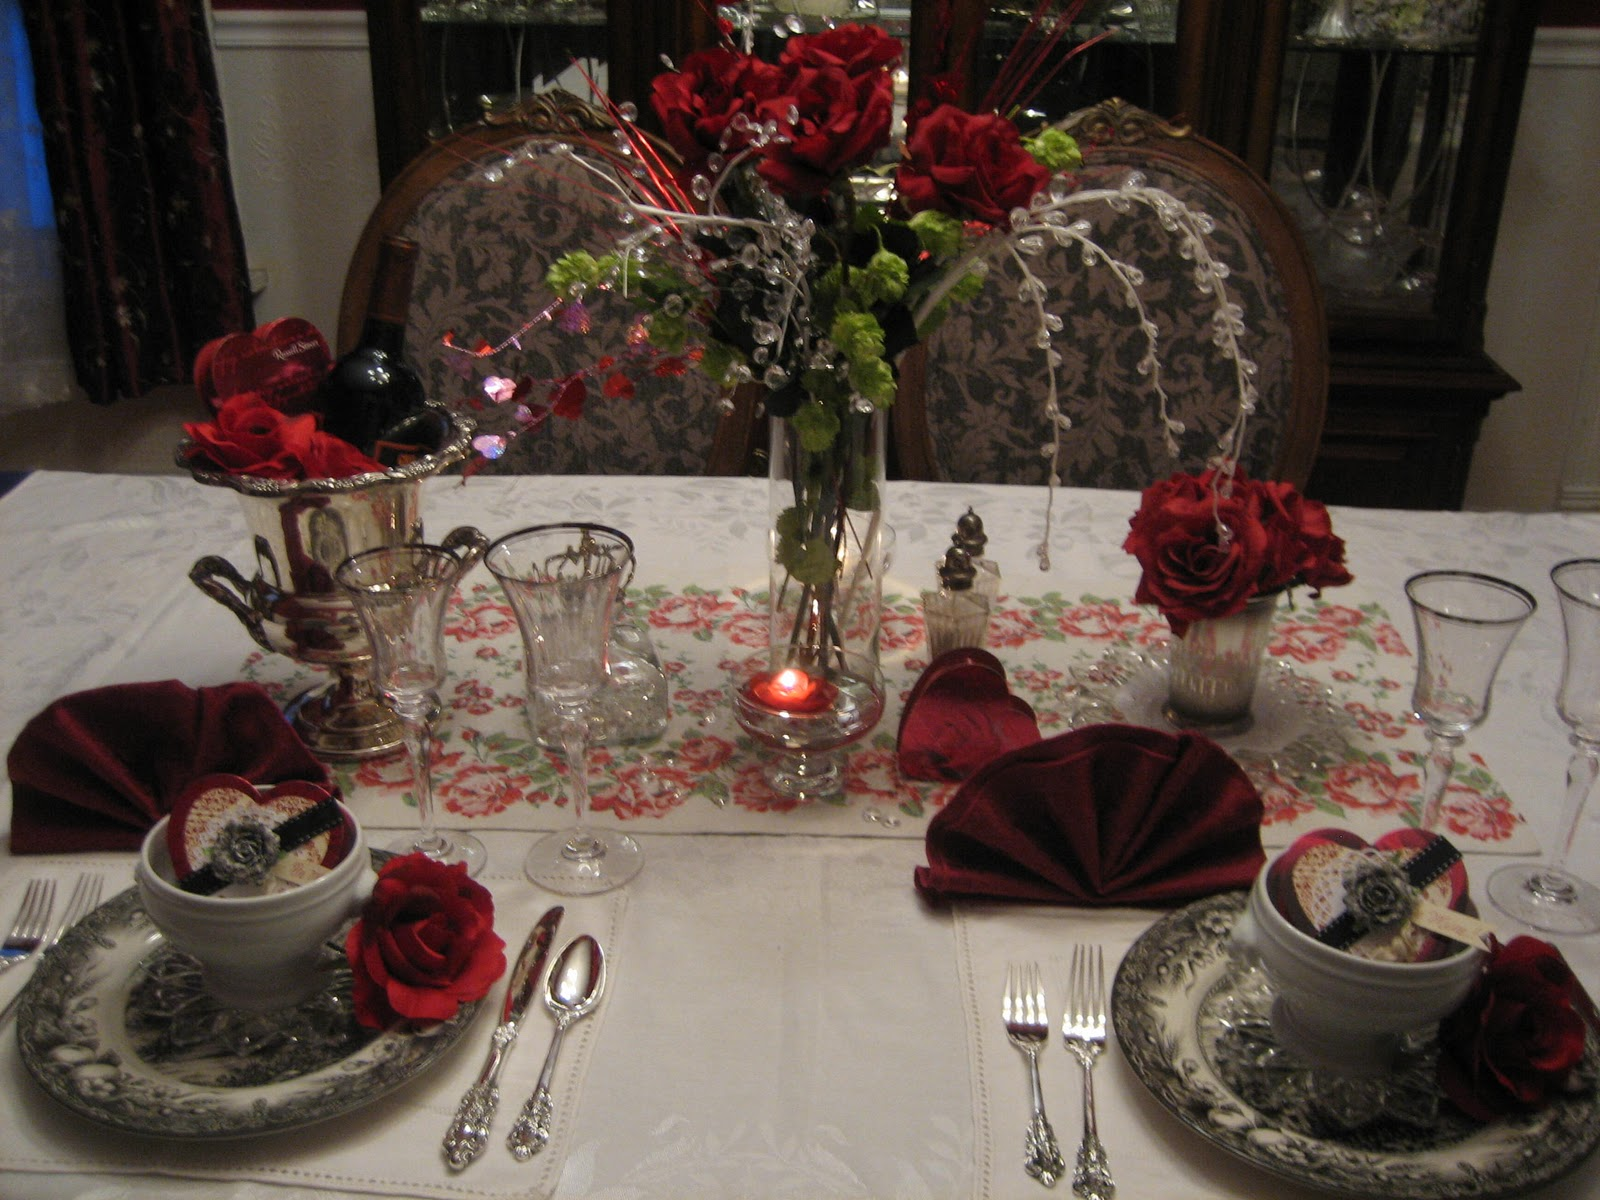 How to set a romantic dinner table for two -  Set The Table For Two My Dining Room Table Is Dressed In A Romantic Dinner